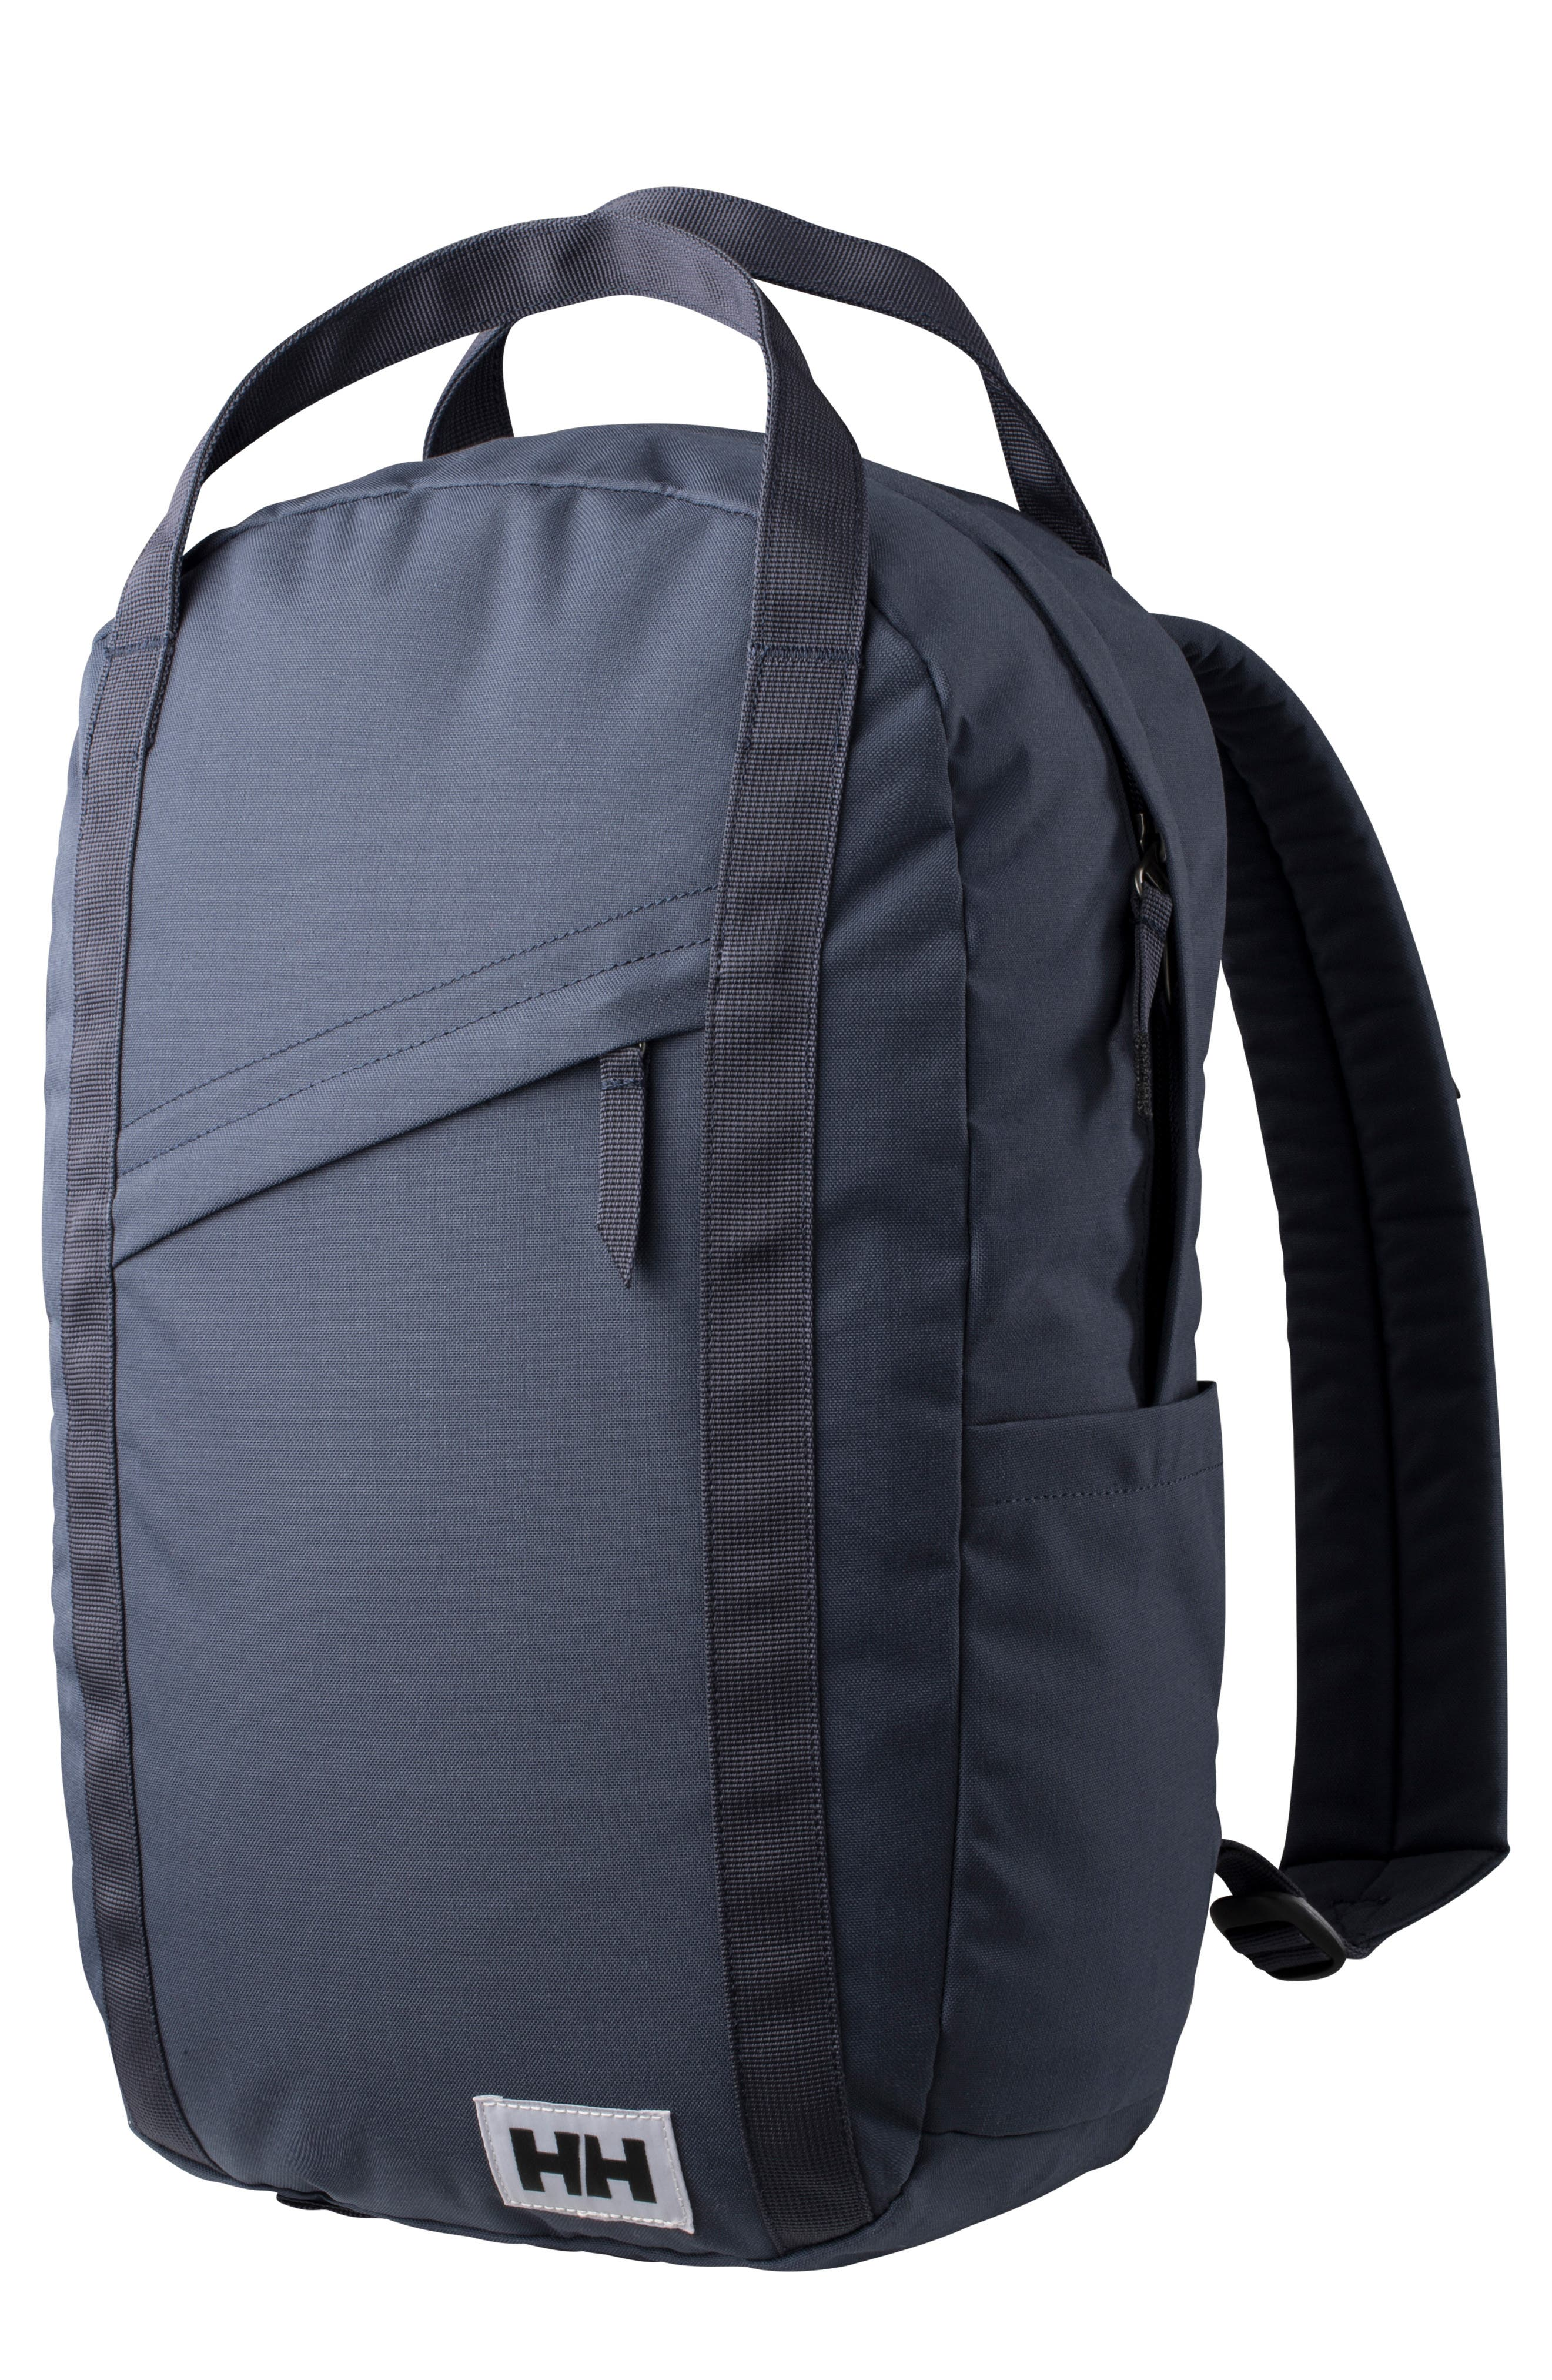 Oslo Backpack - Grey in Graphite Blue